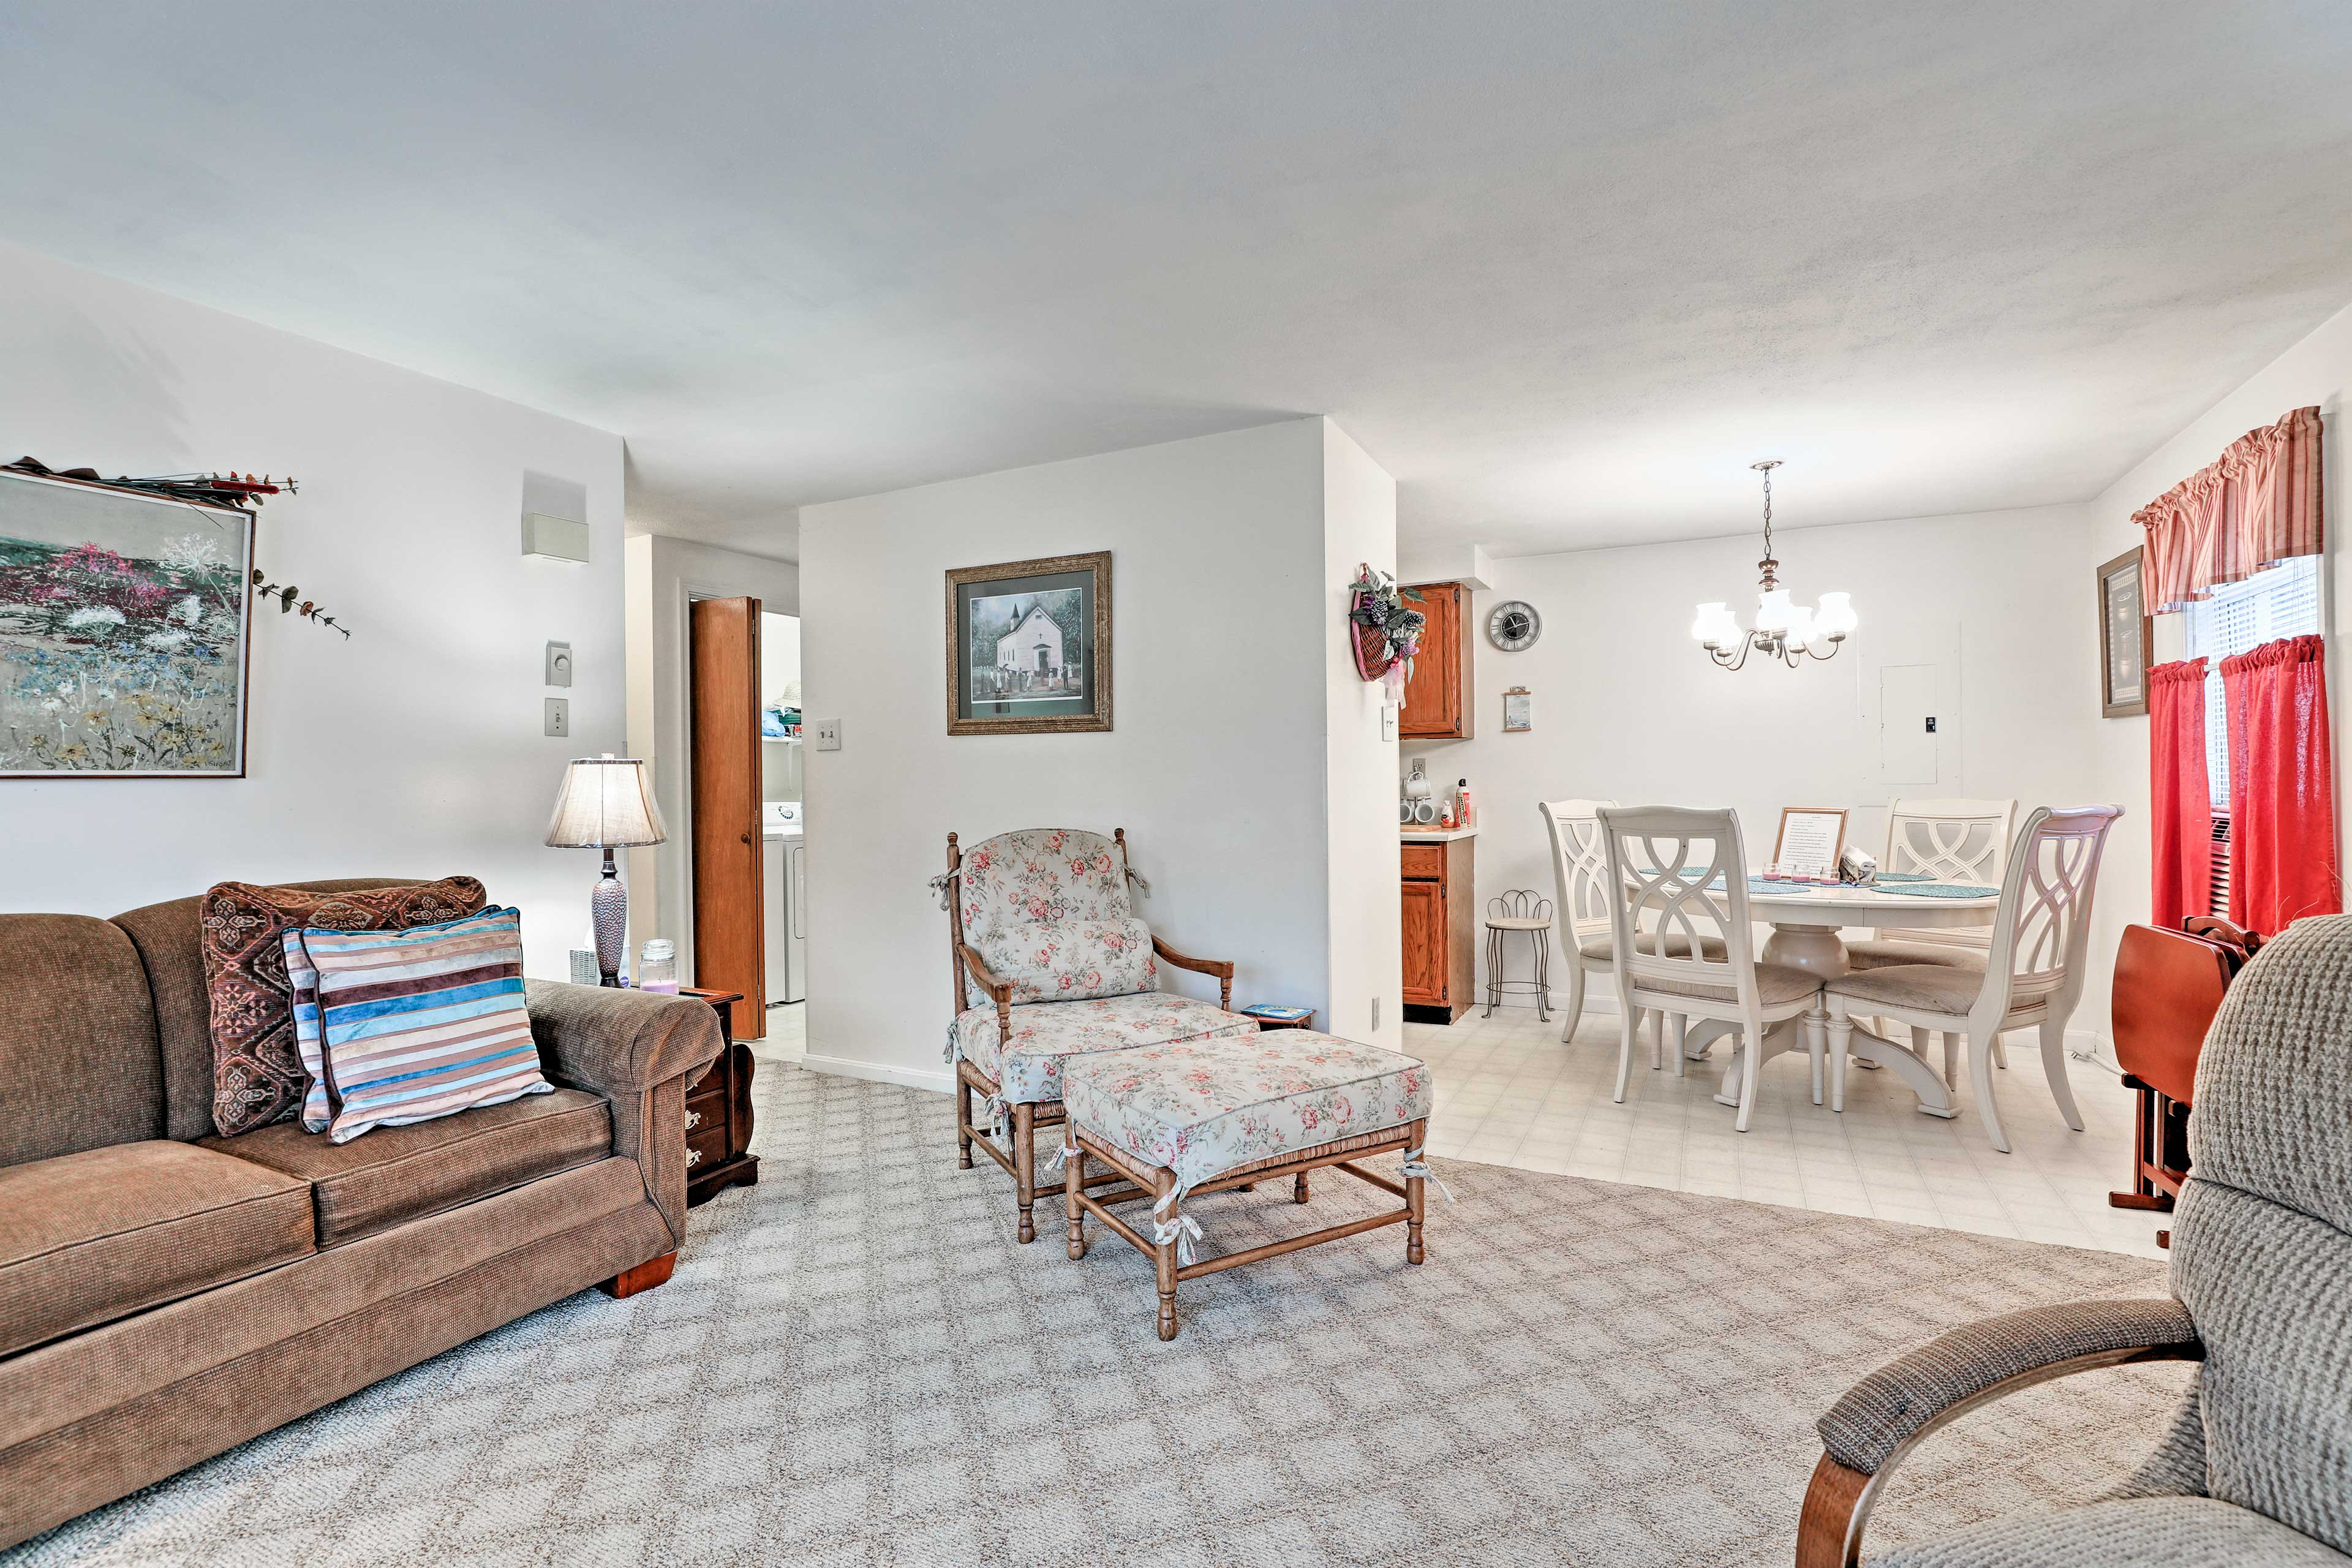 The home pairs traditional decor with updated amenities for the ultimate stay!